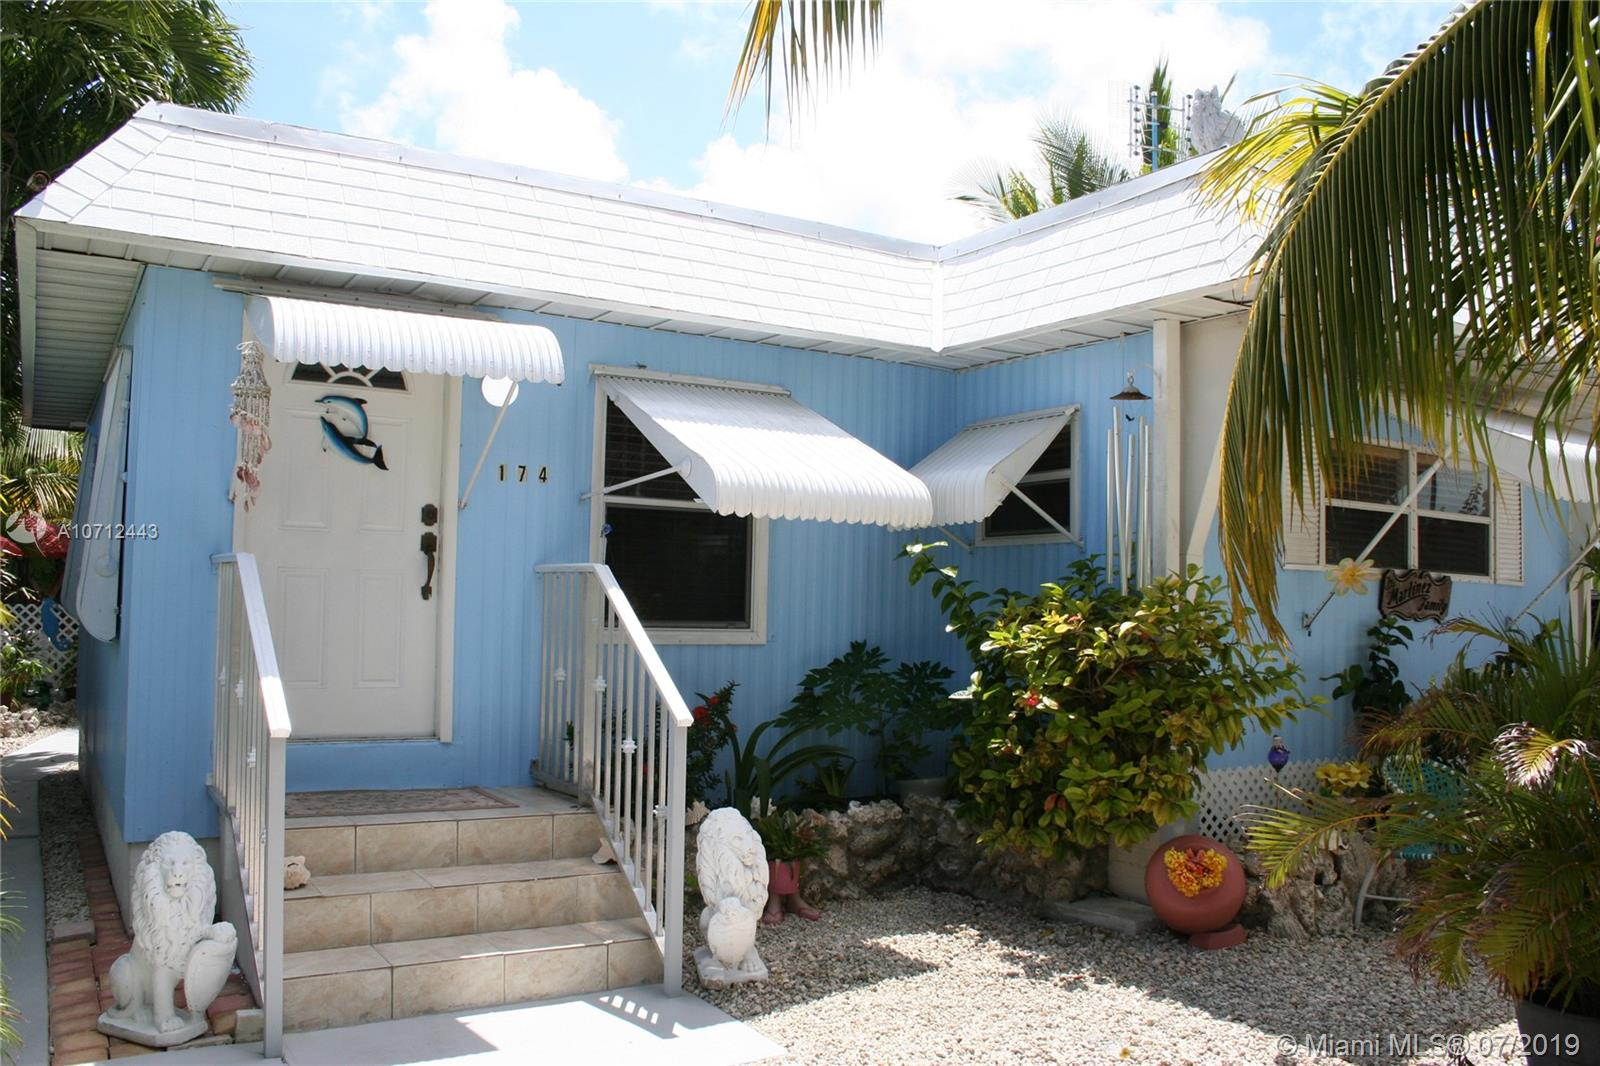 174 2nd Court, Other City - Keys/Islands/Caribb, FL 33037 - Other City - Keys/Islands/Caribb, FL real estate listing